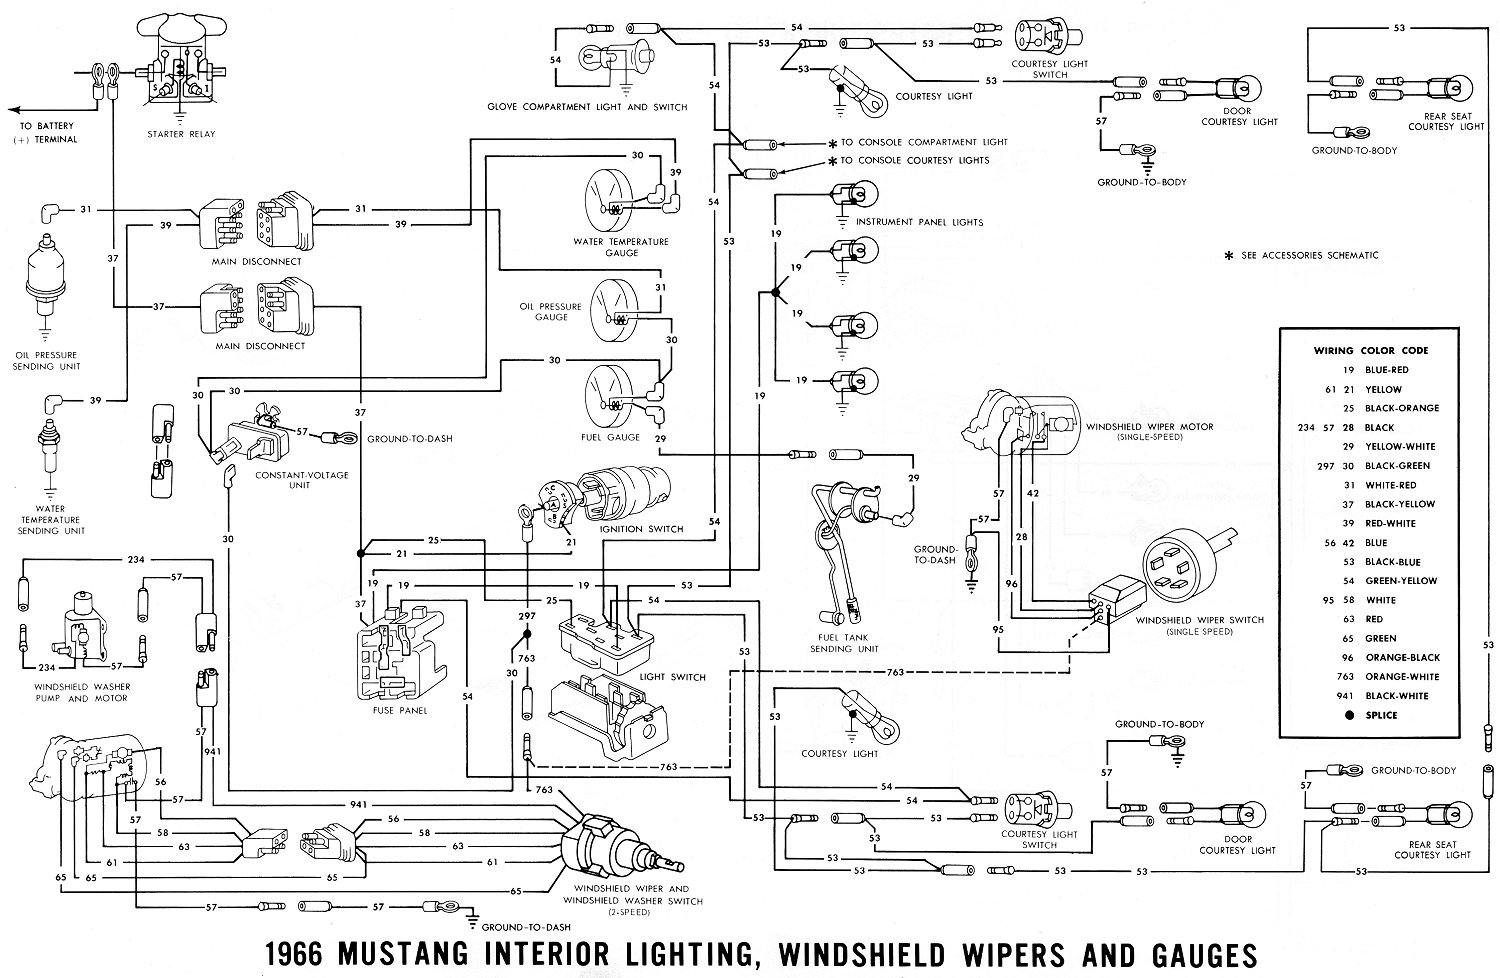 66inter1 1966 mustang wiring diagrams average joe restoration 68 mustang fuse box diagram at reclaimingppi.co